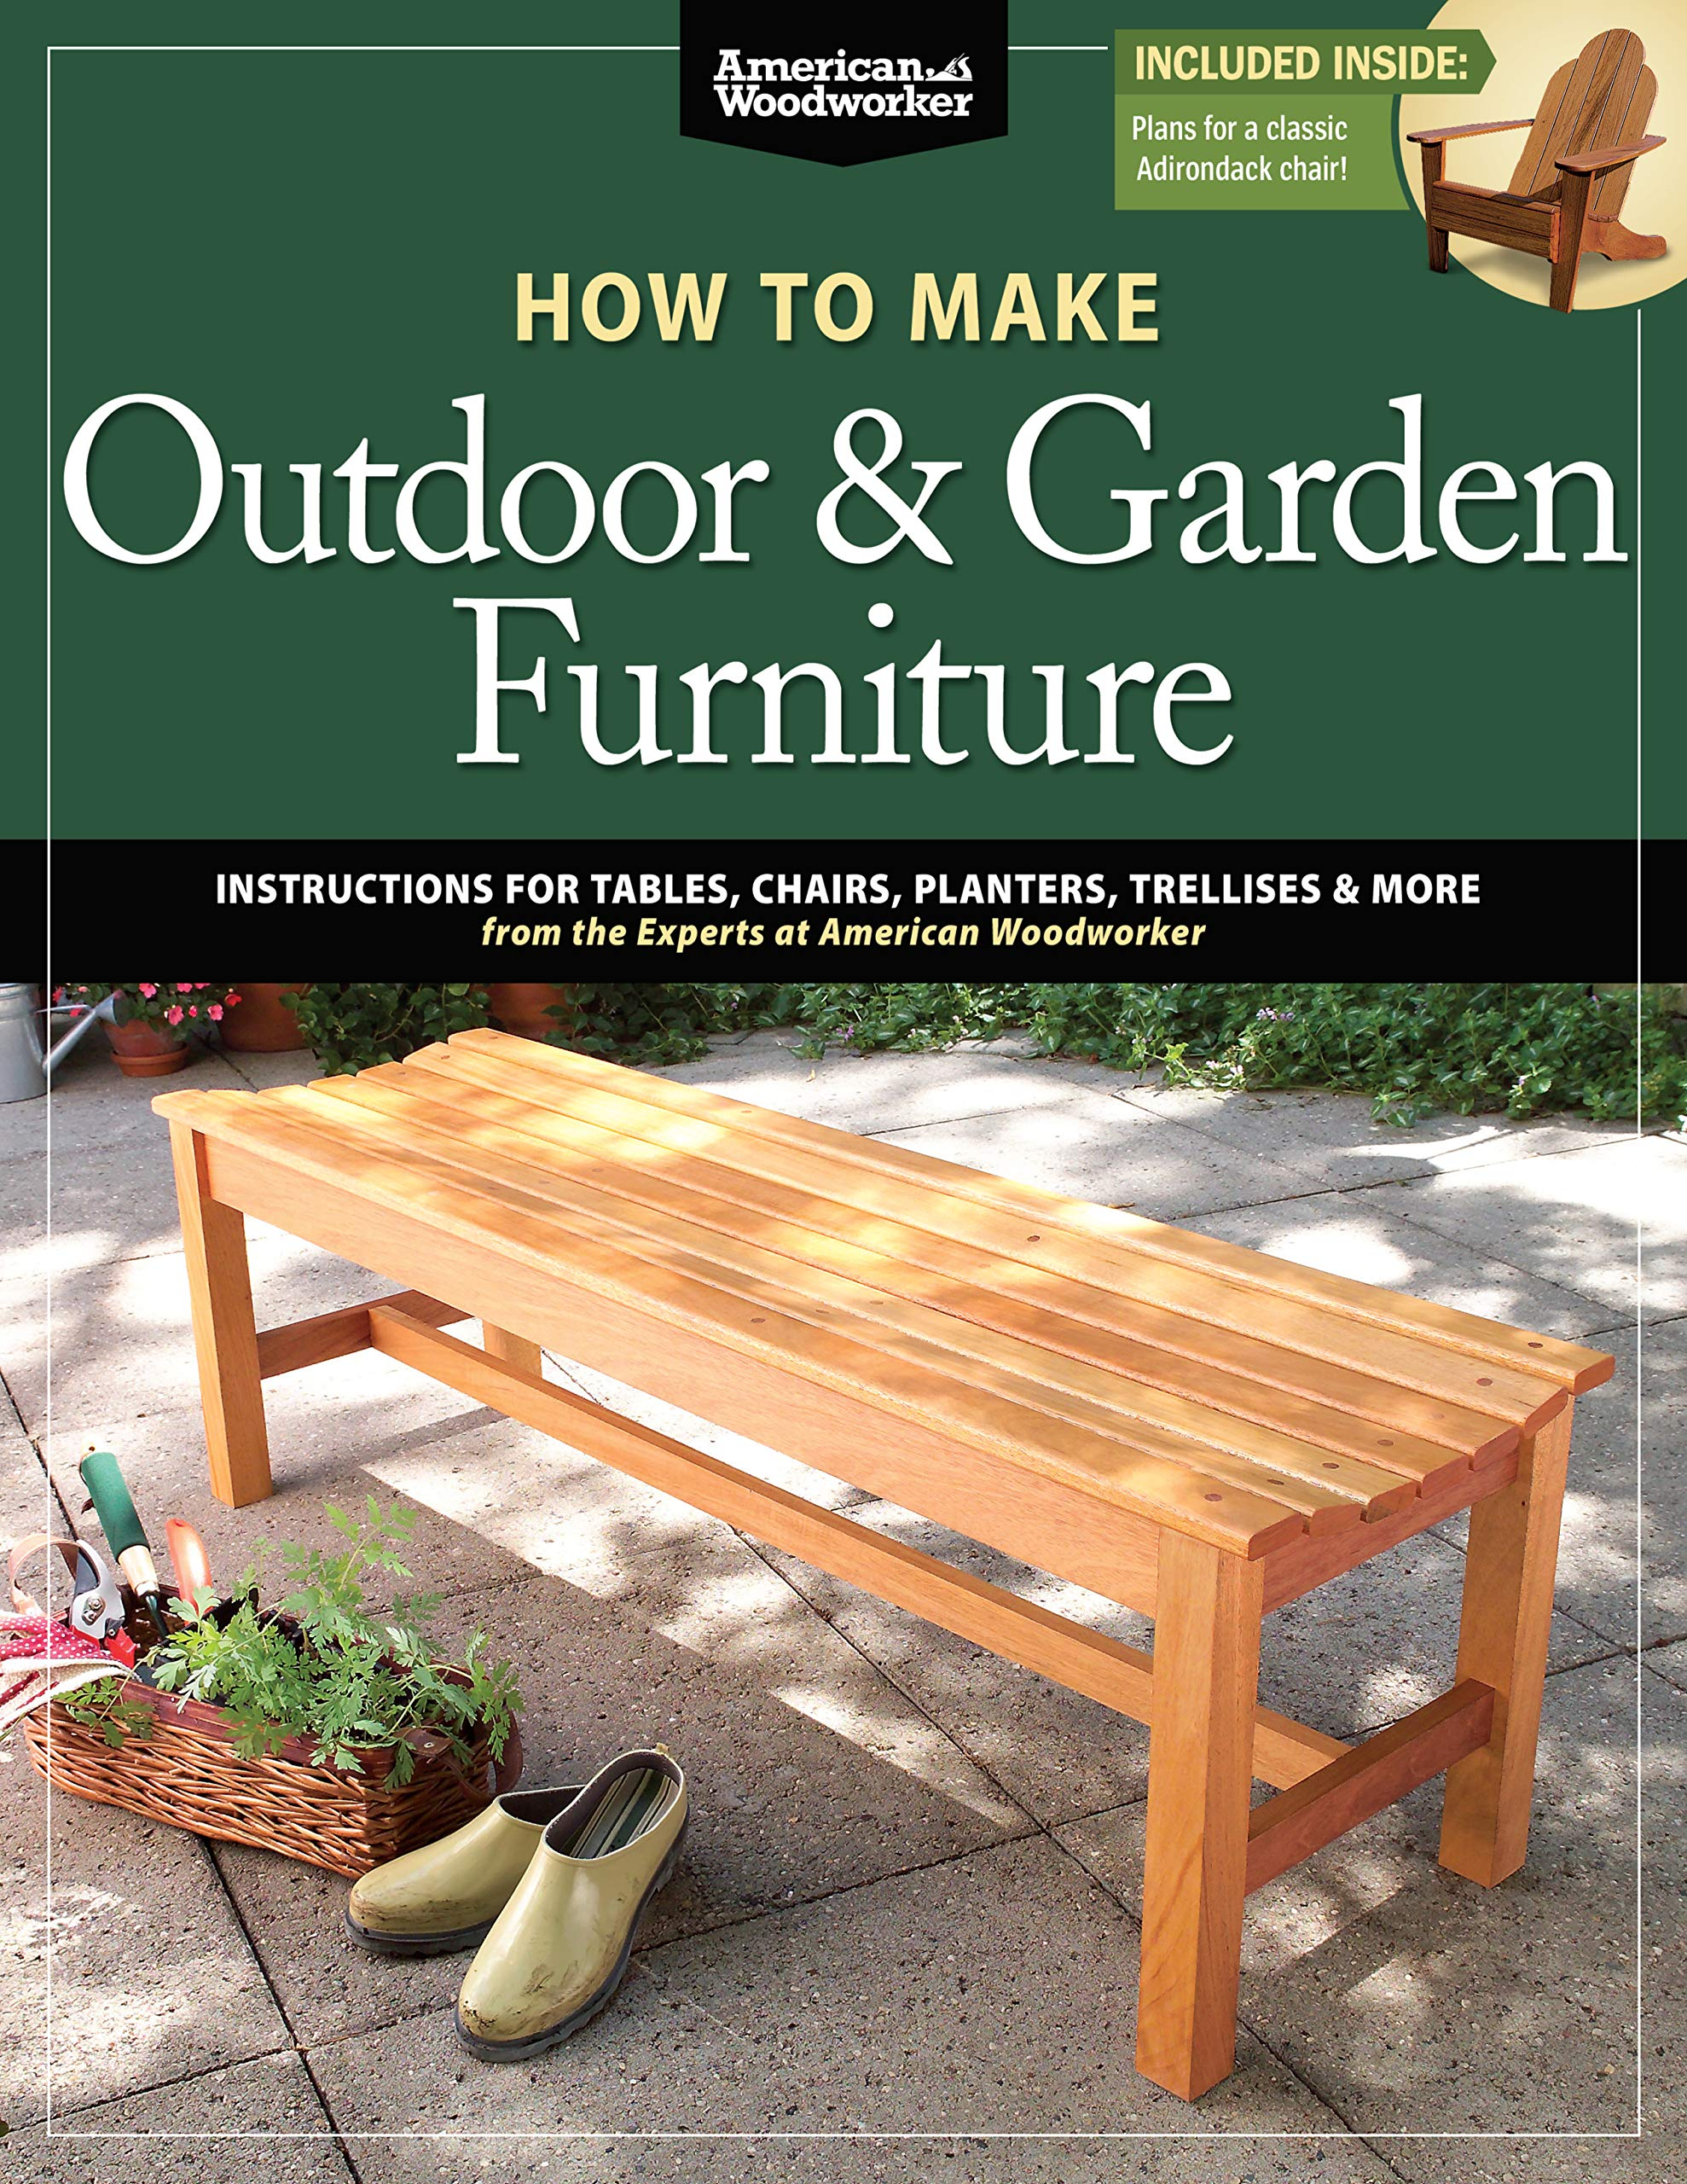 Miraculous How To Make Outdoor Garden Furniture American Woodworker Machost Co Dining Chair Design Ideas Machostcouk